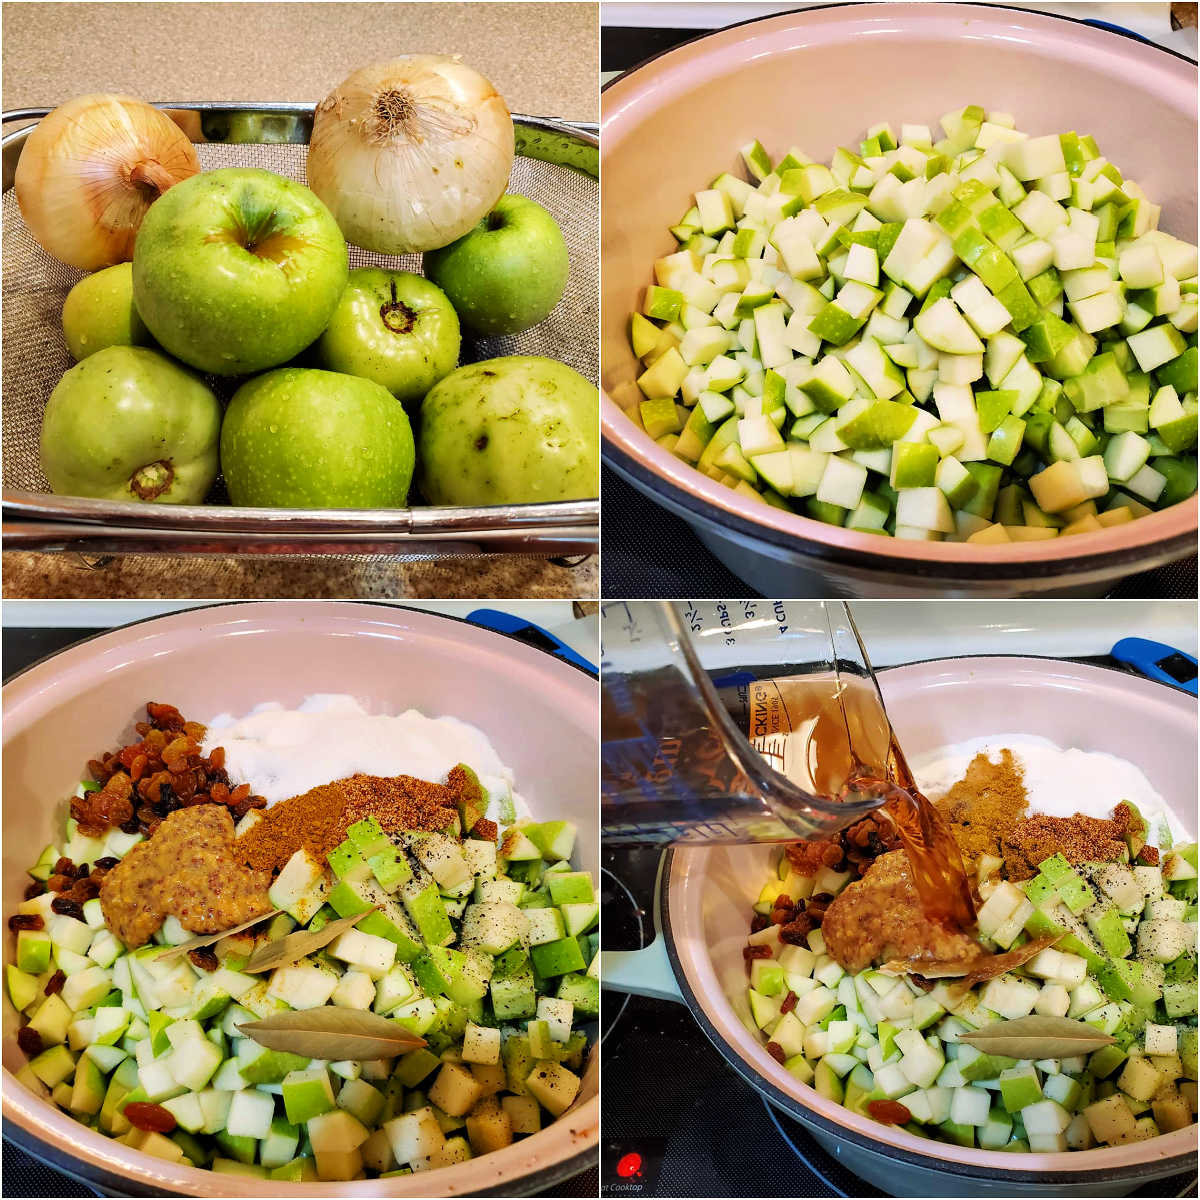 A collage of 4 images: whole apples, tomatoes, and onions, the fruits and vegetables diced in a large pot, all the spices and flavorings on top of the apples and onions, and pouring in the vinegar and the water.